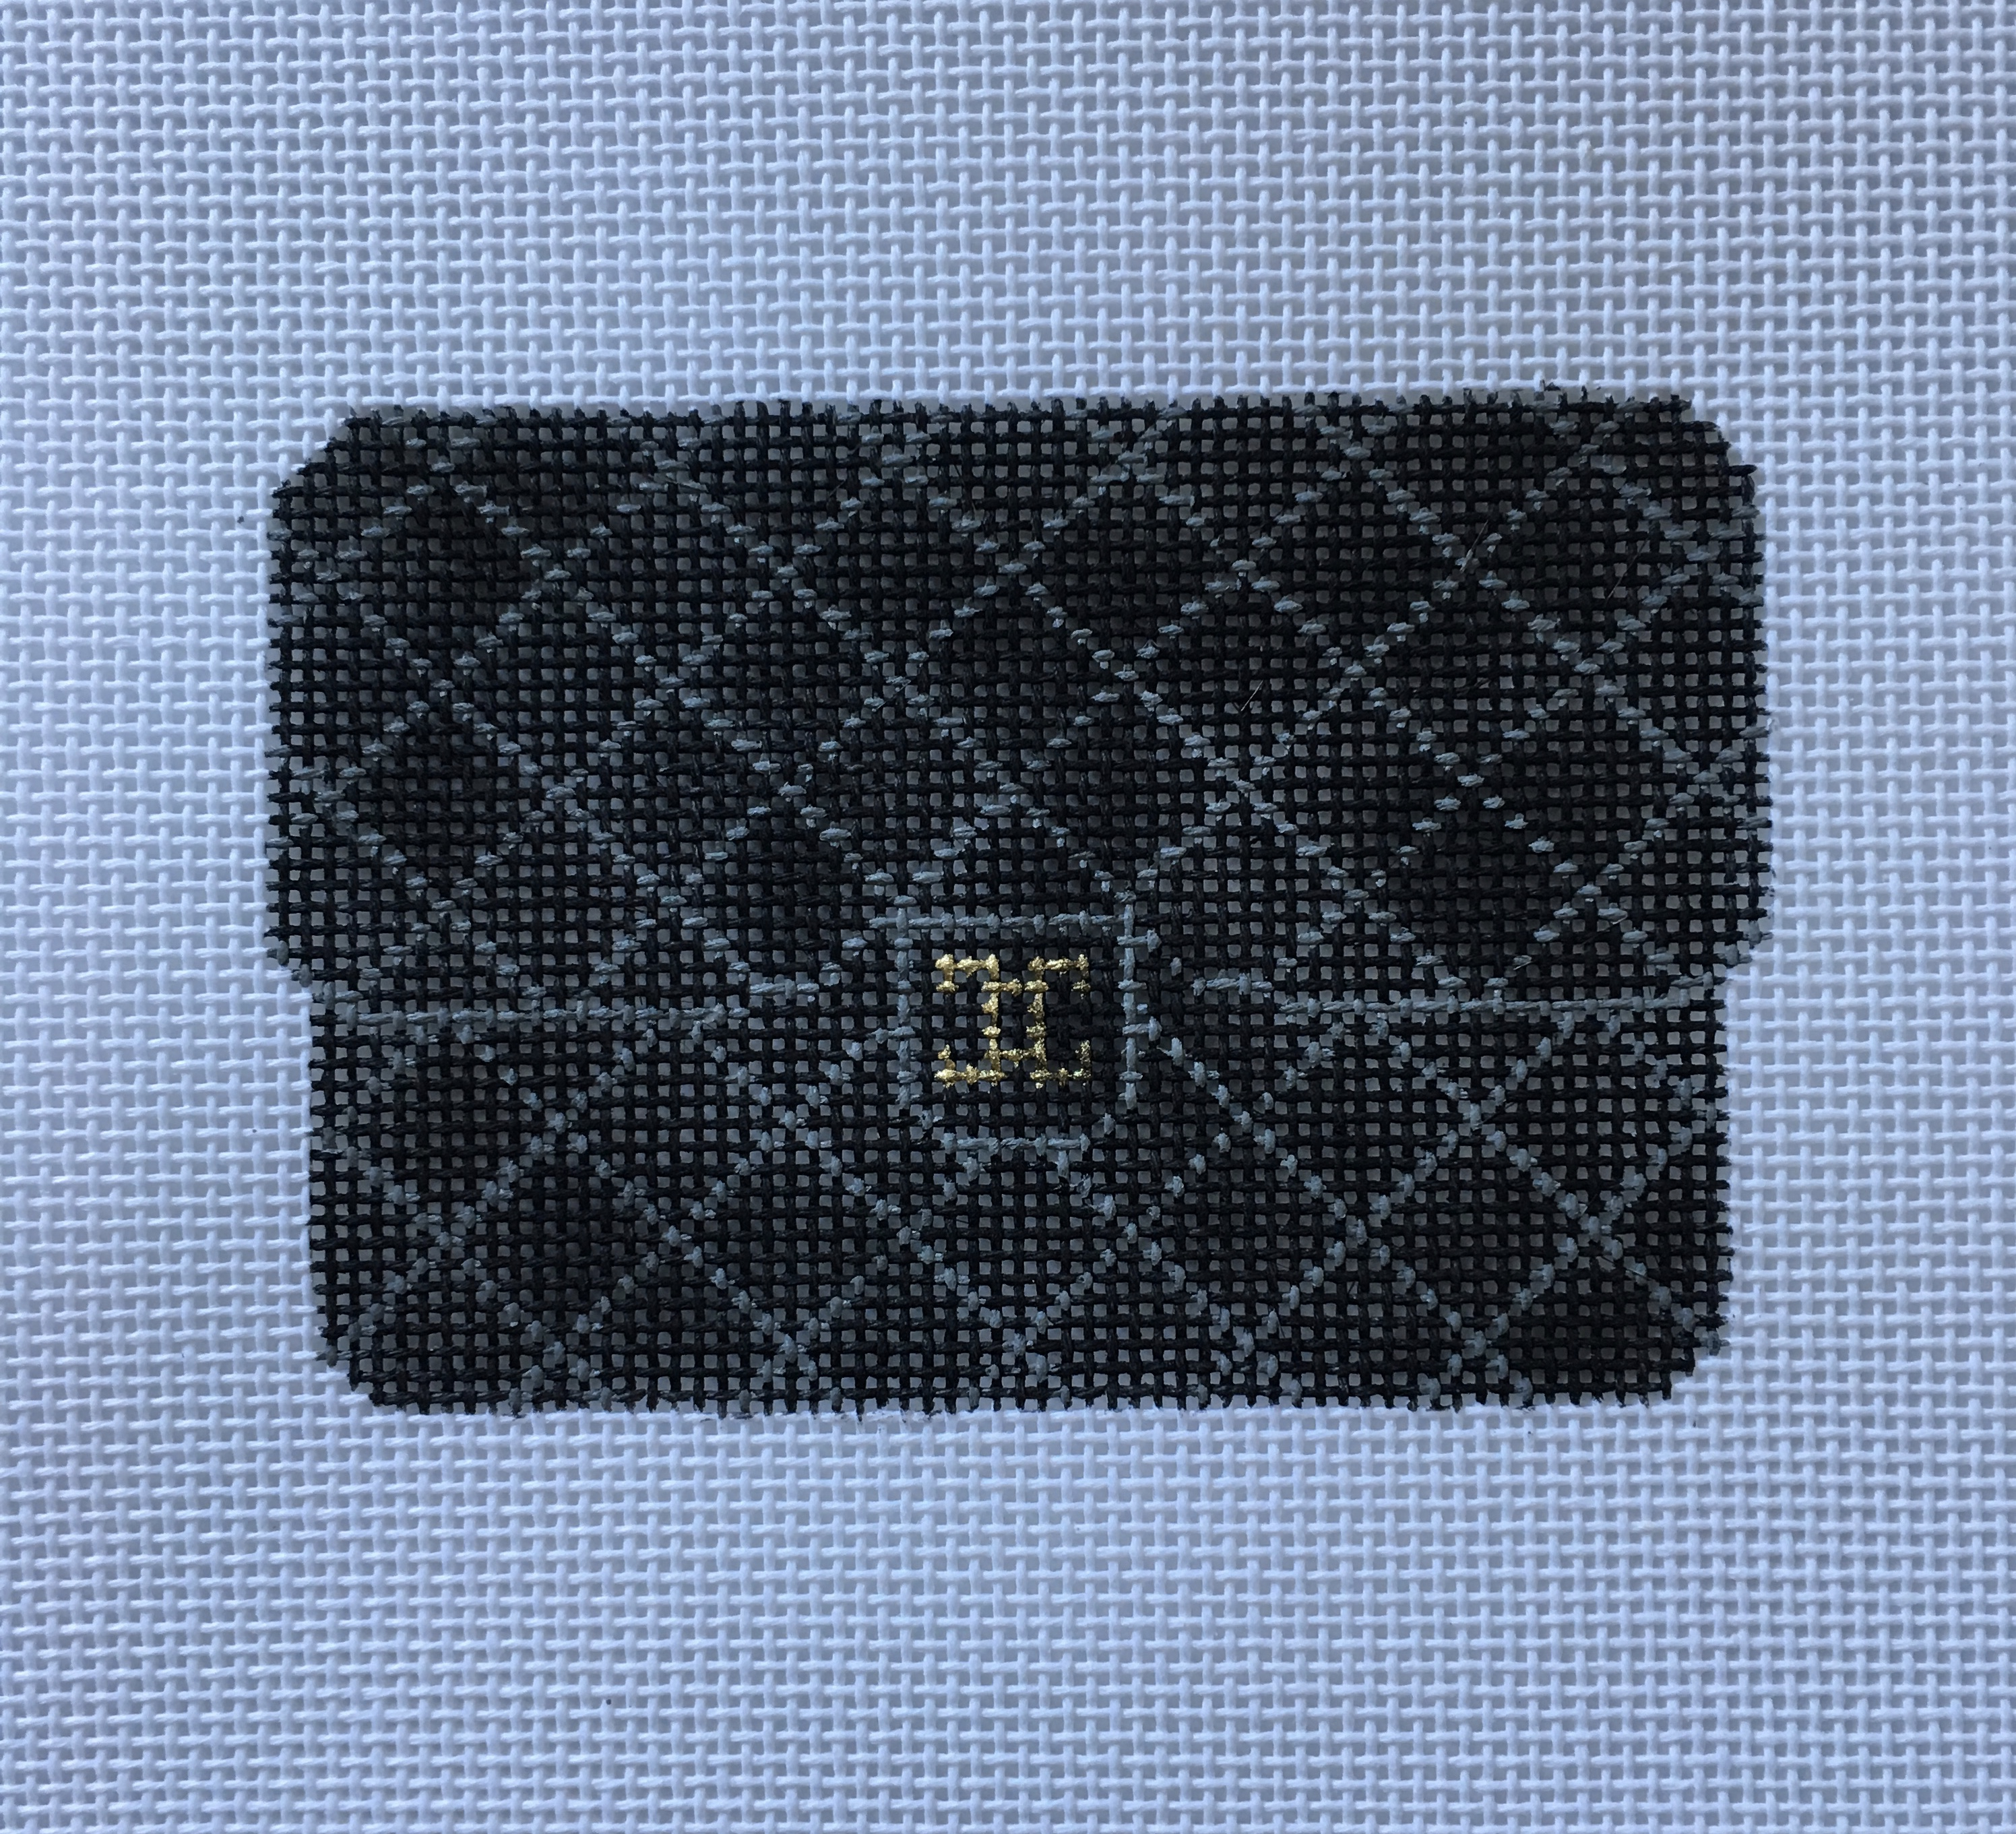 Mini Purse Ornament- Chanel inspired